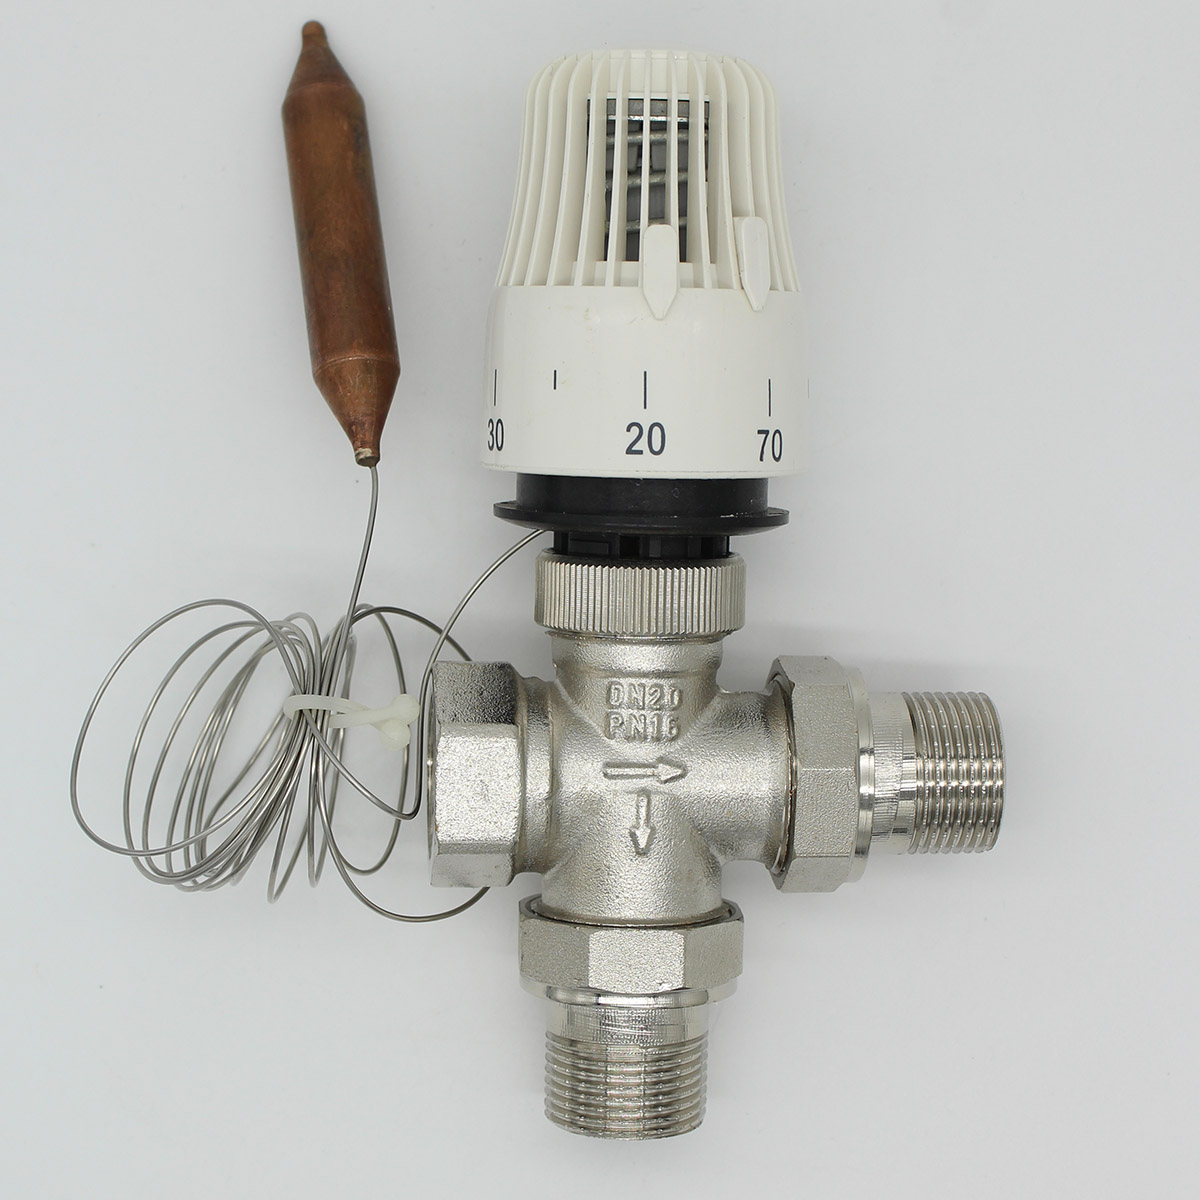 Energy Saving 30-70 Degree Control Floor Heating System Thermostatic Radiator Valve  M30*1.5 Remote Controller Three Way Valve